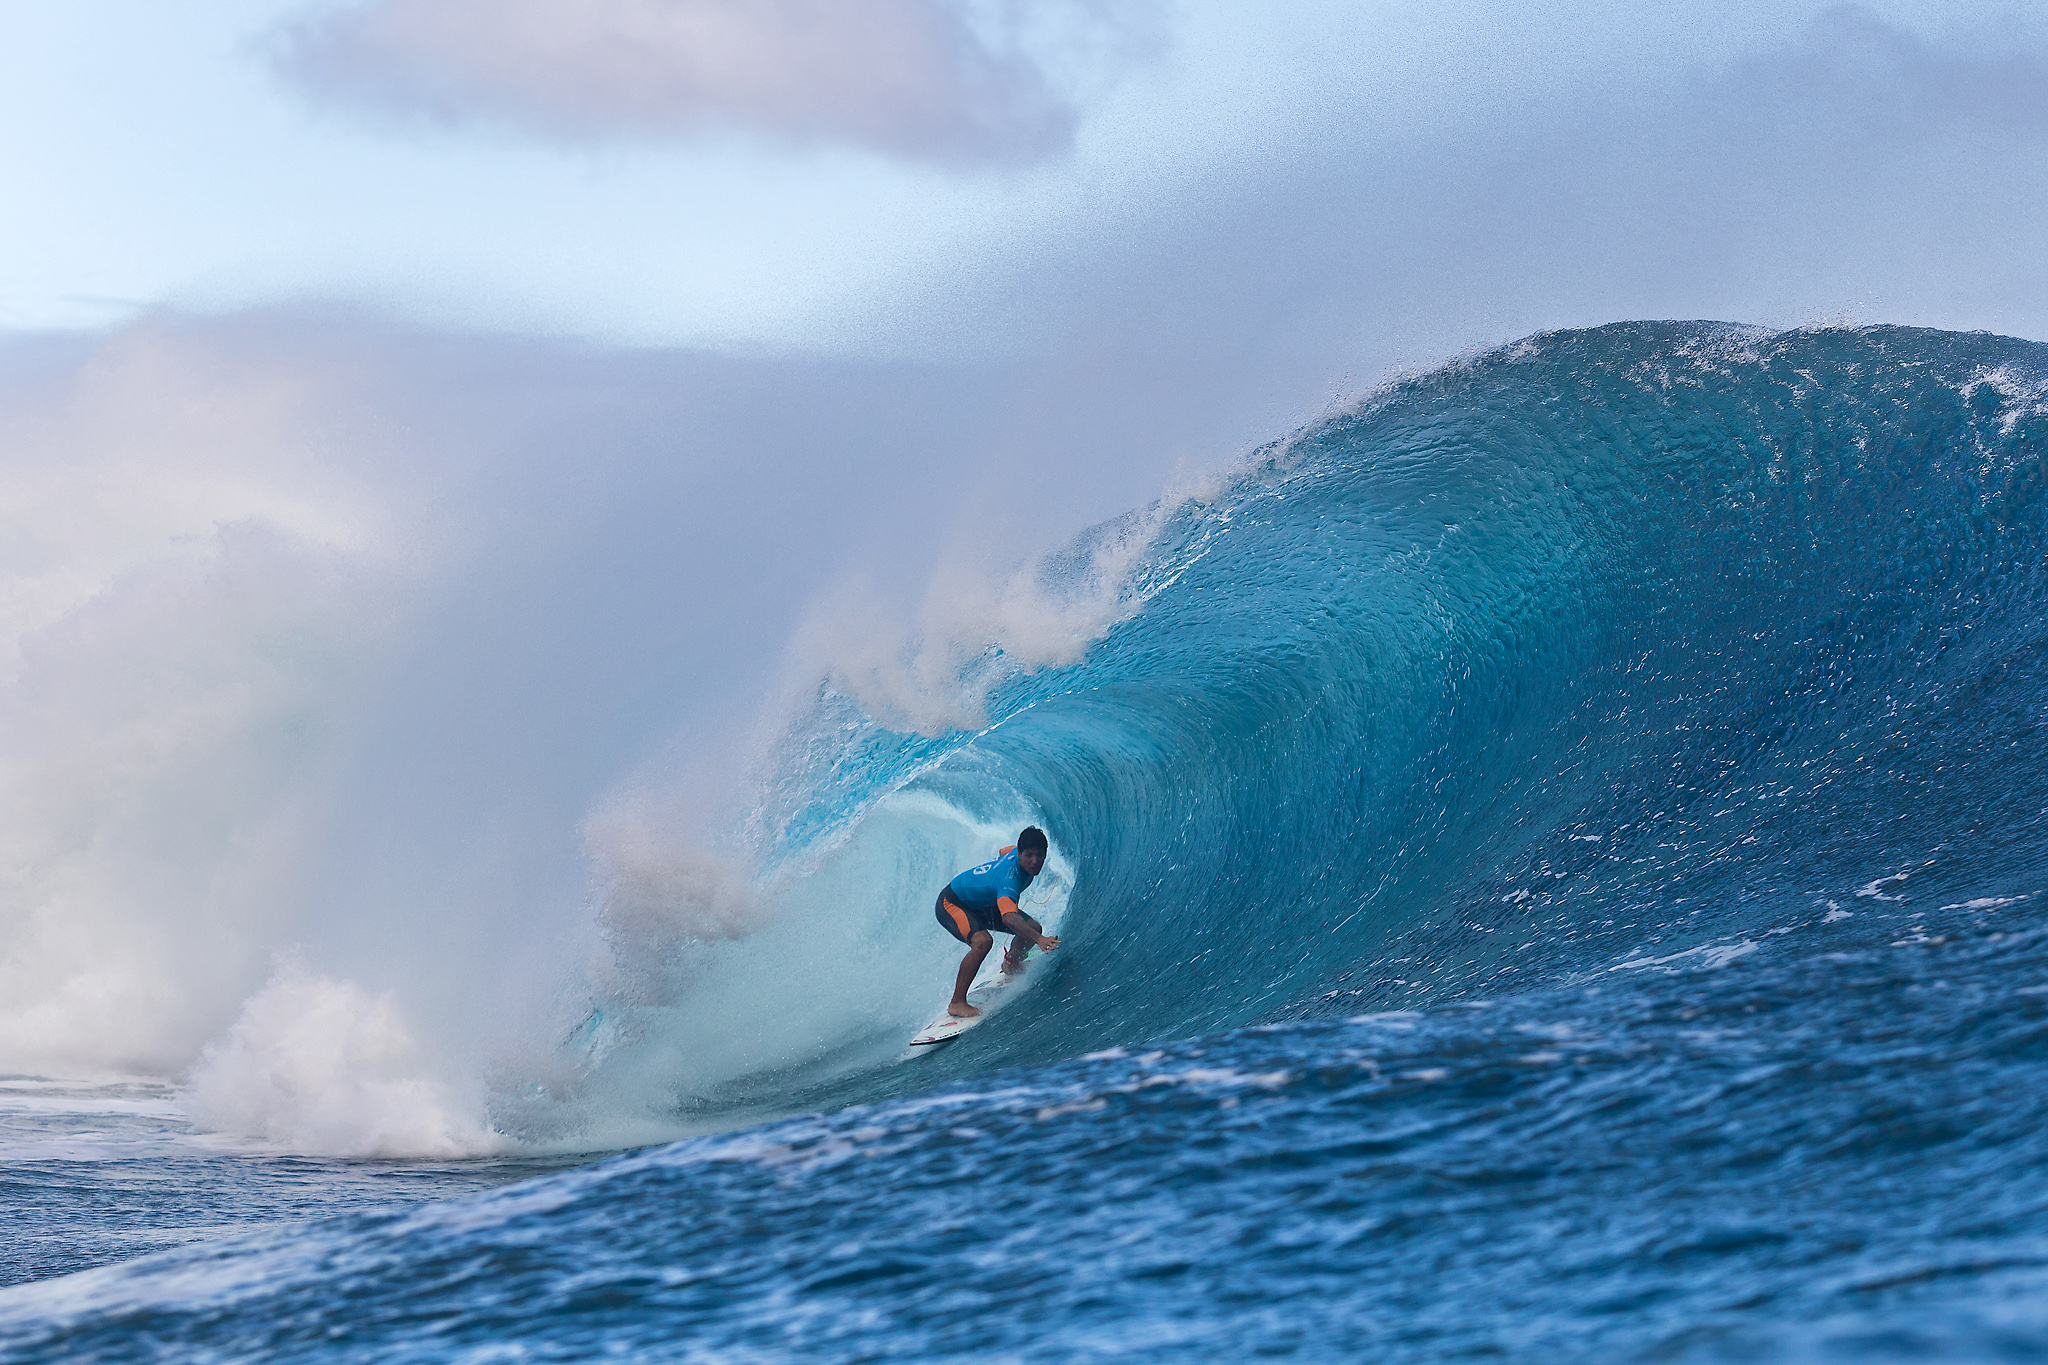 Gabriel Medina of Maresias, Sao Paulo, Brazil (pictured) winning in Round 4 of the Billabong Pro Tahiti with a heat total of 17.64 points (out of a possible 20.00) which included a near perfect 9.97 point ride (out of a possible 10.00) to advance in to the Quarter Finals at Teahupoo, Tahiti on 24 August 2015. IMAGE CREDIT: © WSL / Cestari PHOTOGRAPHER: Kelly Cestari SOCIAL MEDIA TAG: @wsl @KC80